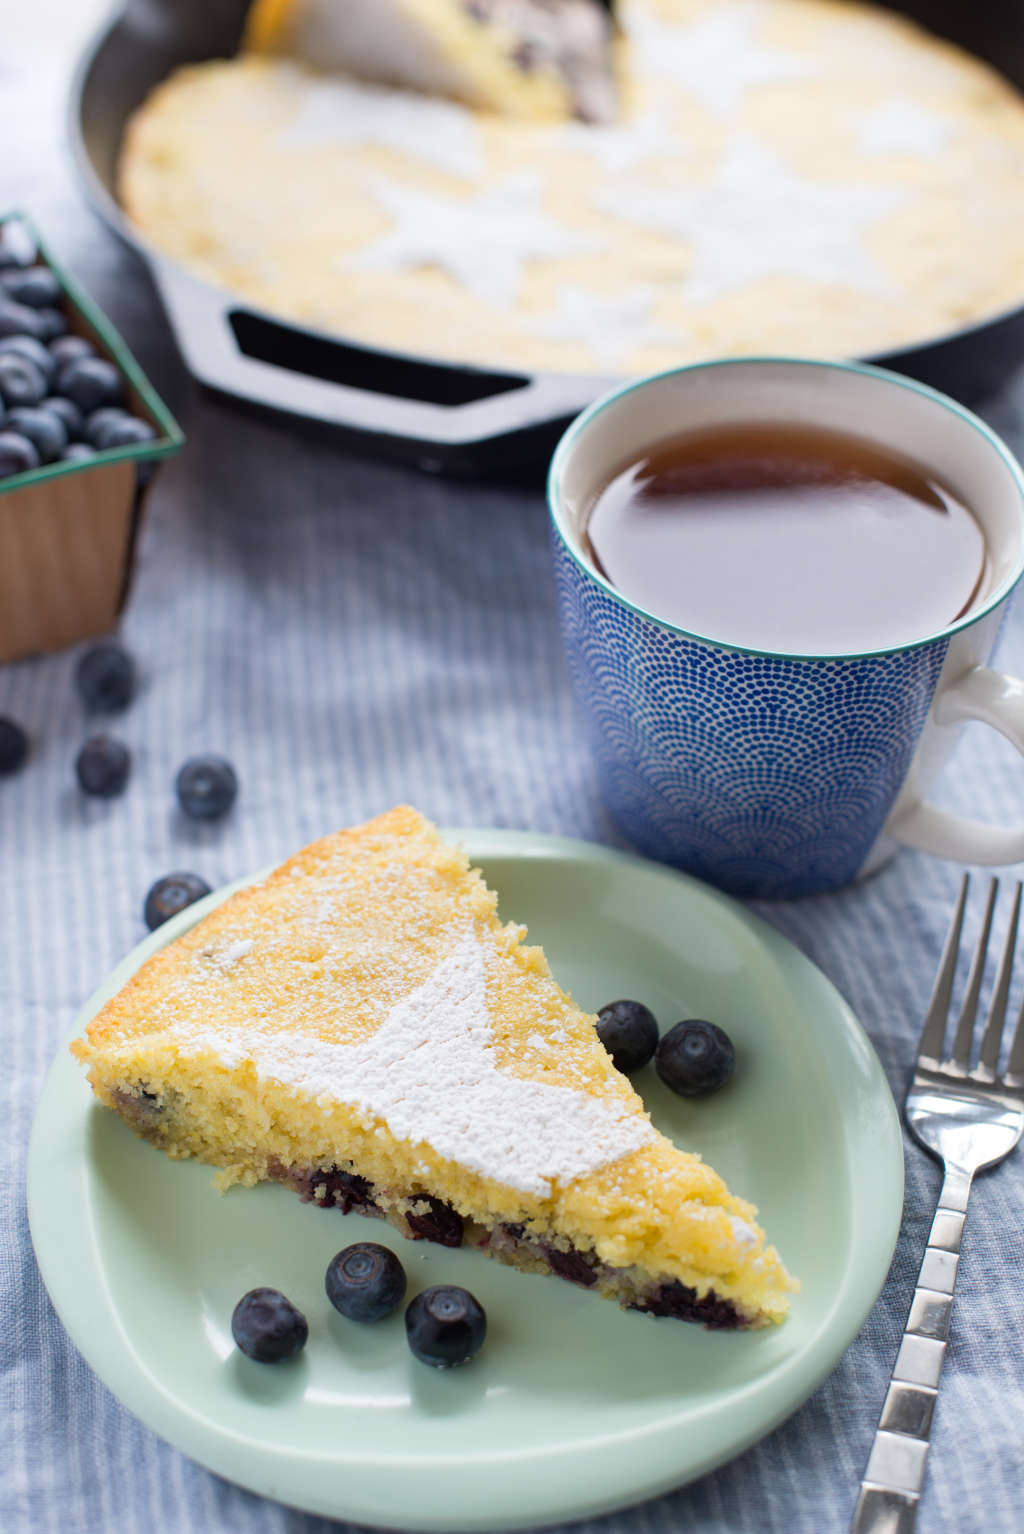 Recipe: Blueberry-Lemon Skillet Cake